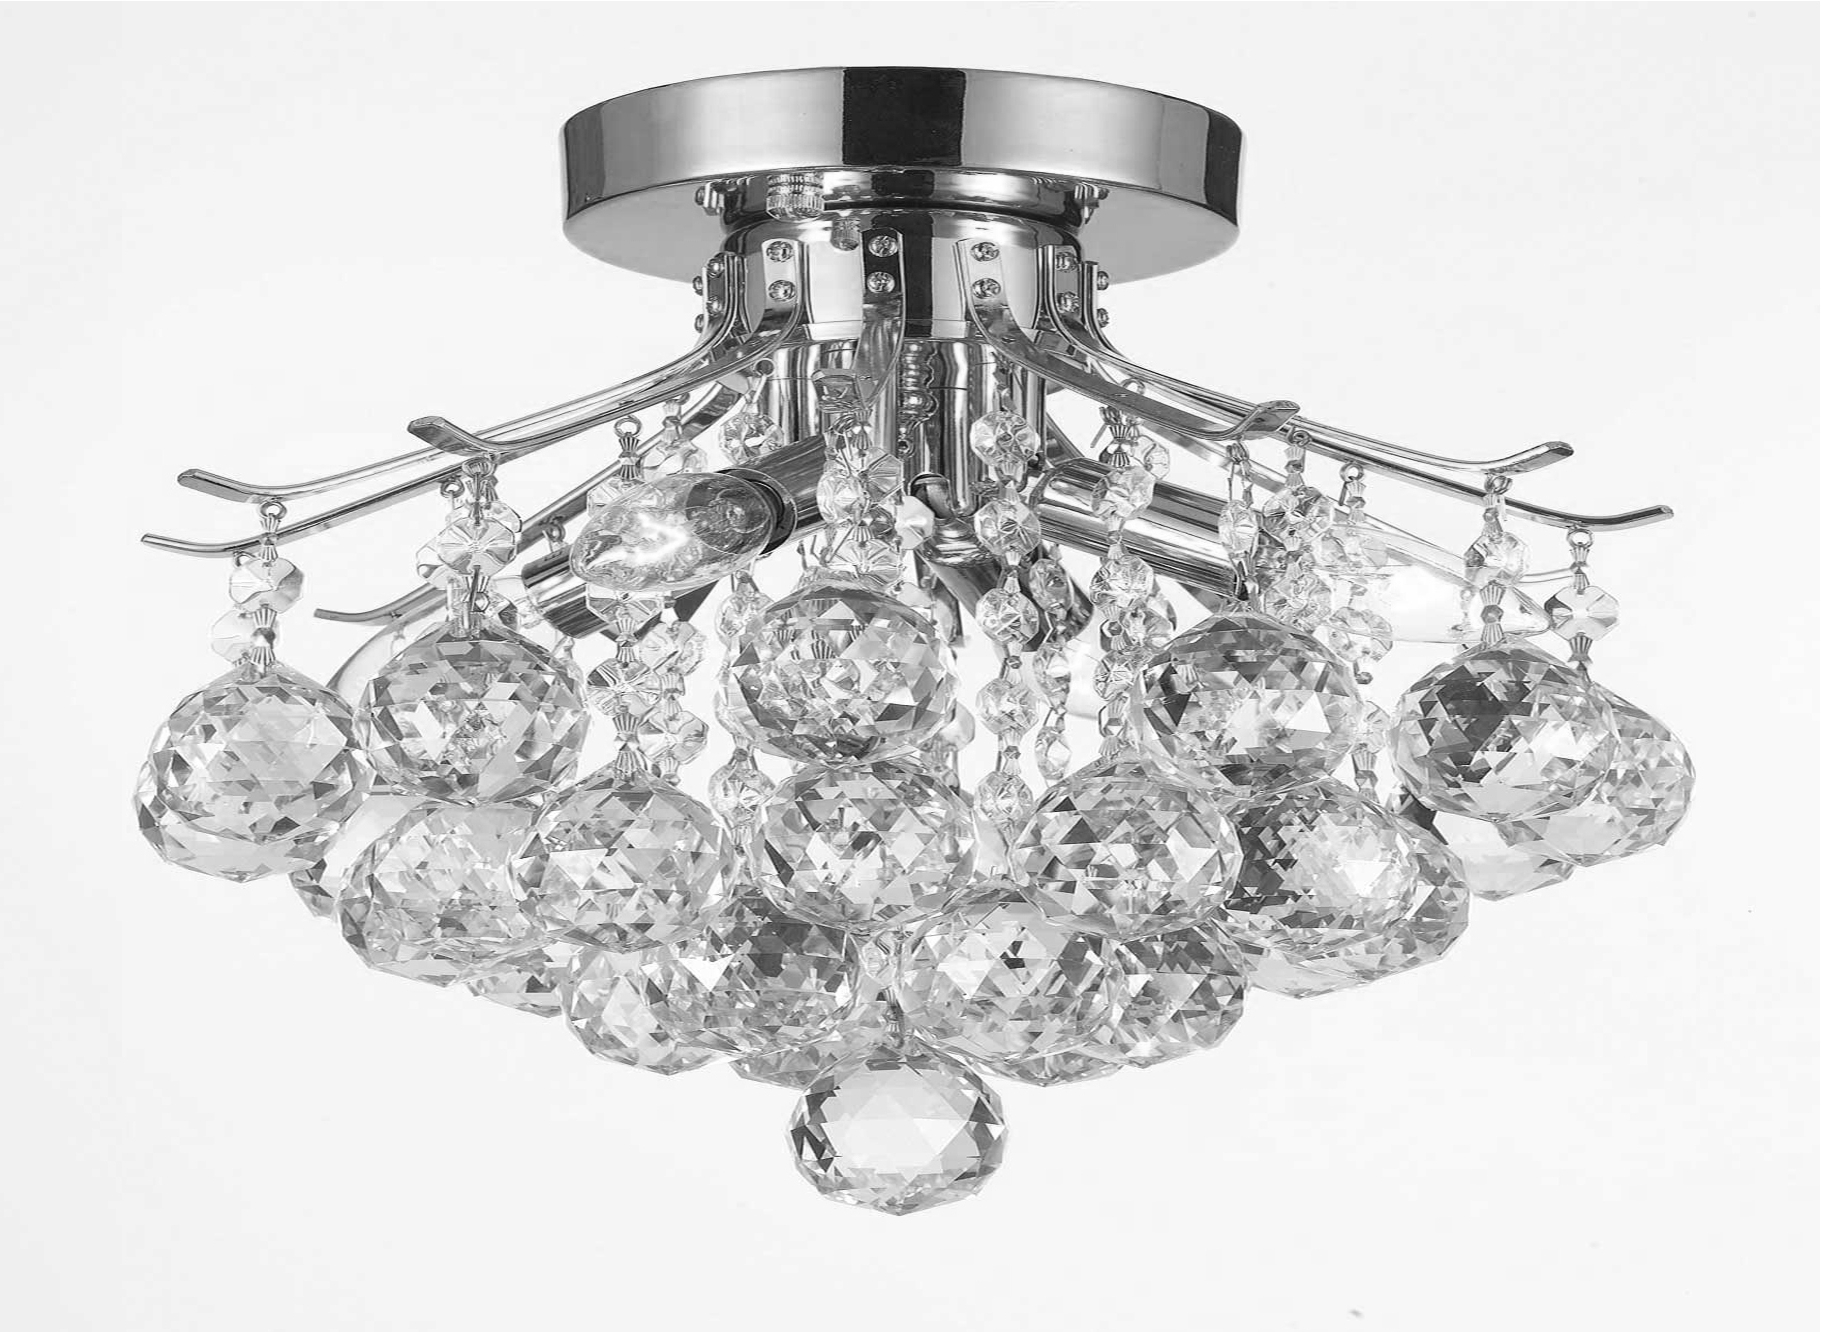 G7 Cs/1132/4 Gallery Empire Style Empire Crystal Chandelier With Most Up To Date Wall Mount Crystal Chandeliers (Gallery 13 of 15)